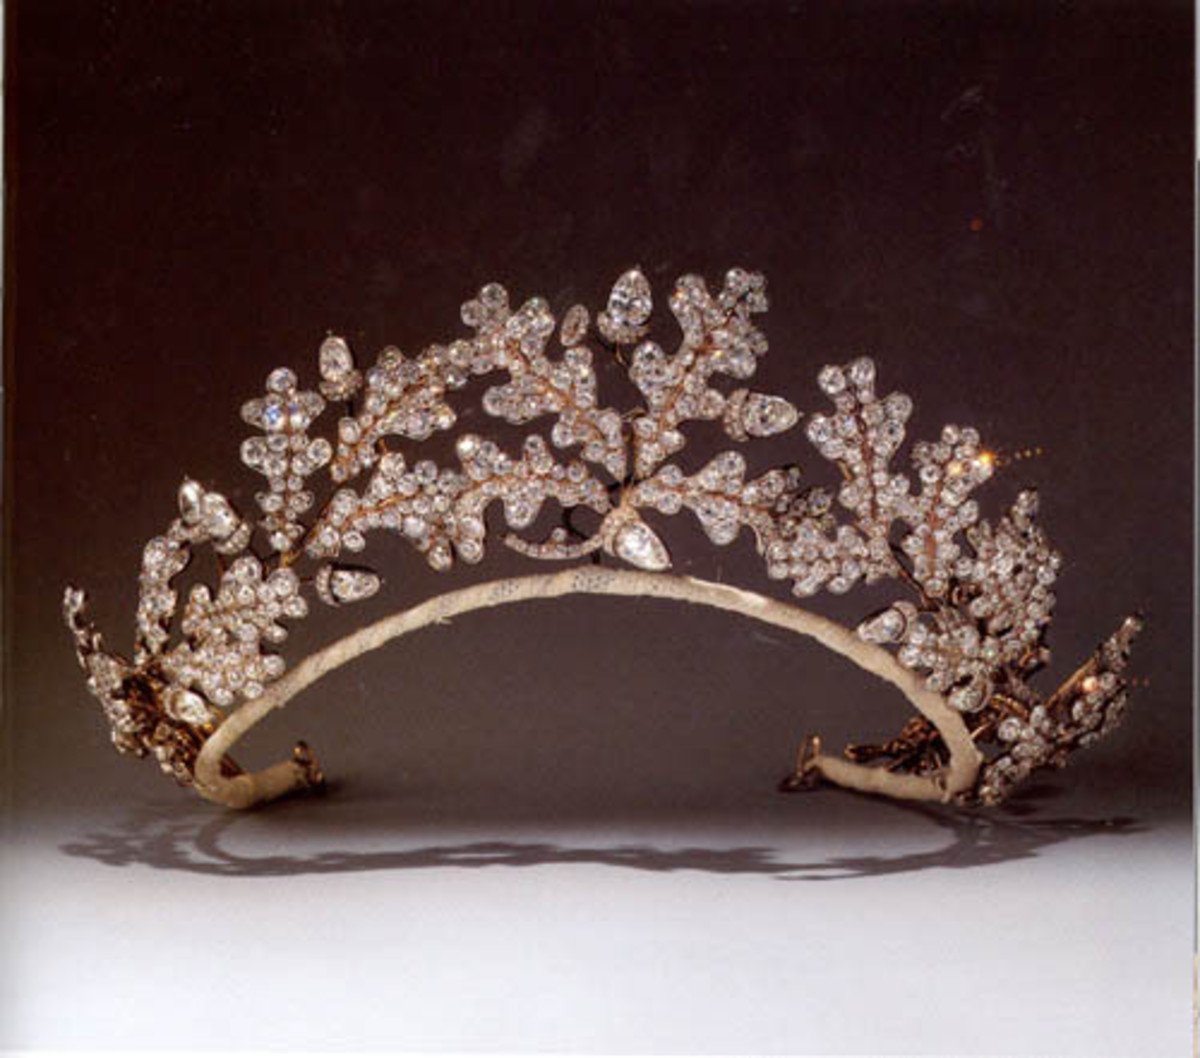 This tiara of oak leaves, acorns and hollow acorn cups was designed in the manner of ancient Greek jewelry, set with a profusion of brilliant-and rose-cut diamonds. It was made by Garrard after the Neo-Classical fashion of the early 19th century for the 15th Duke of Norfolk to give to his bride, Gwendolen Constable Maxwell, on their marriage in 1904.